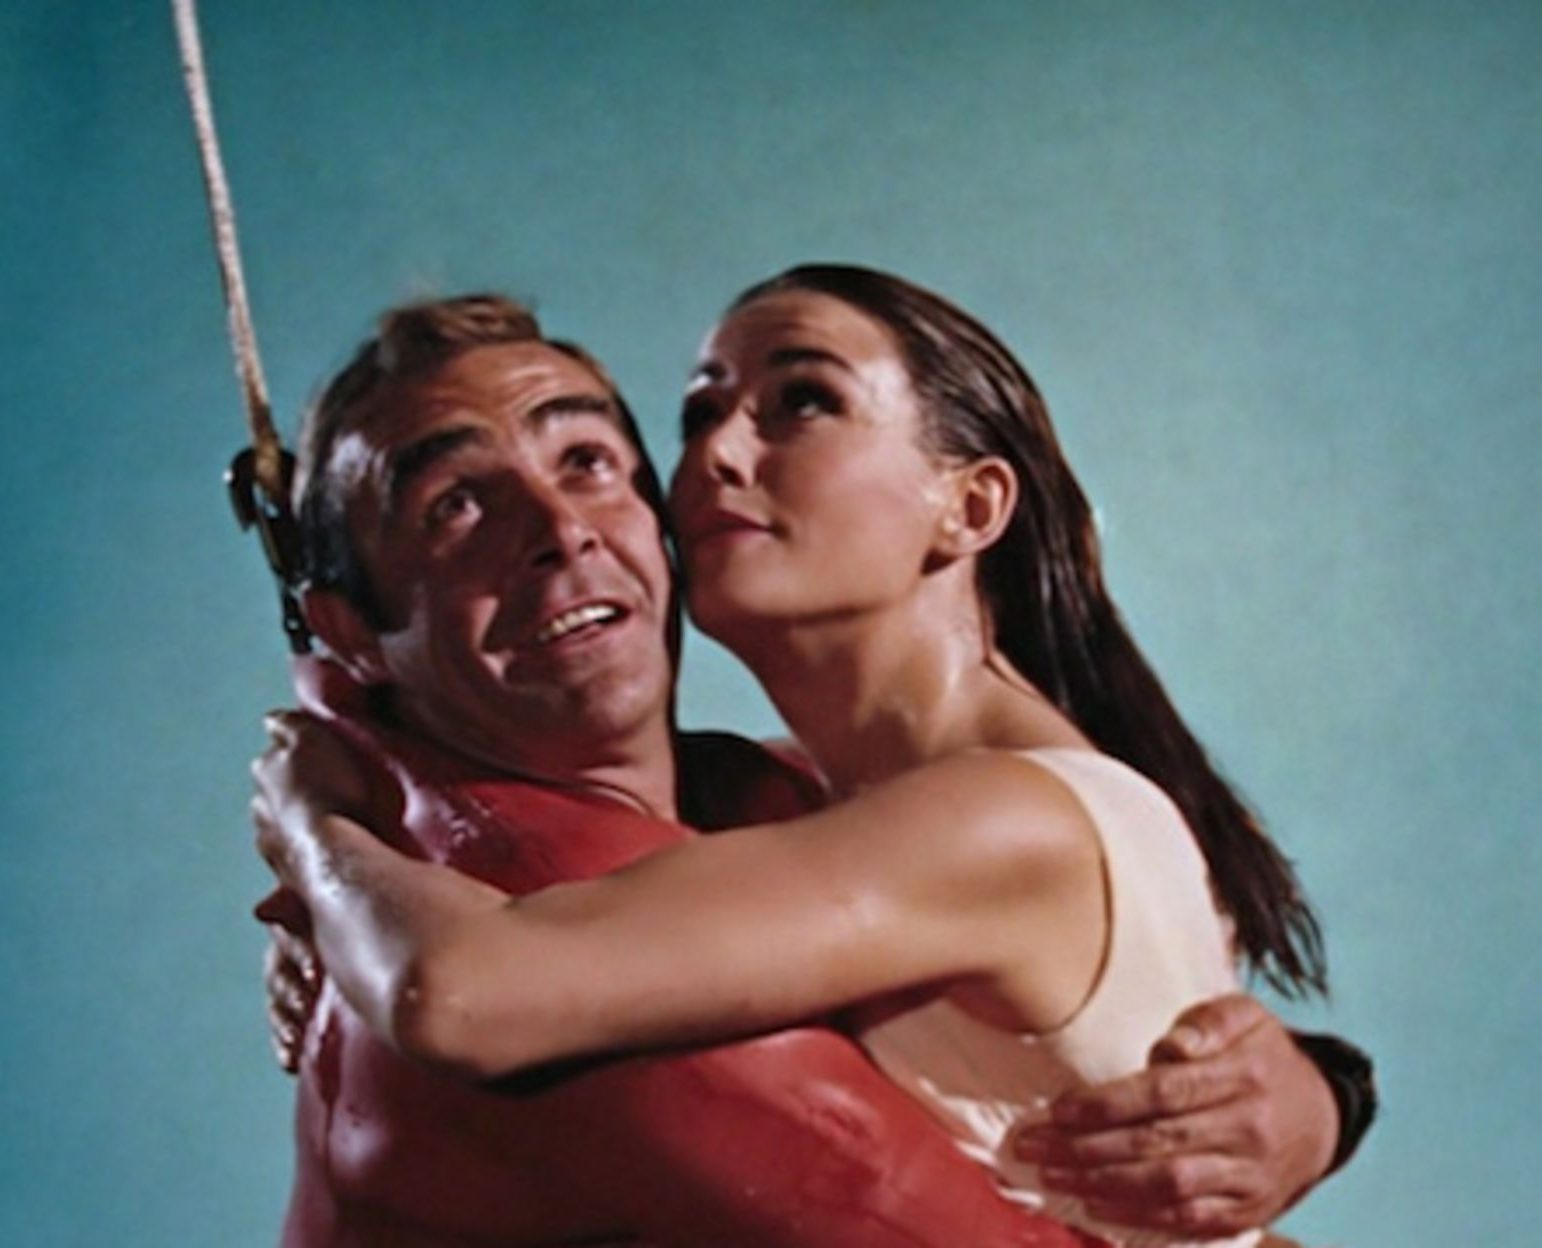 thunderball hed e1616664872787 20 Classic James Bond Moments That Have Aged Terribly